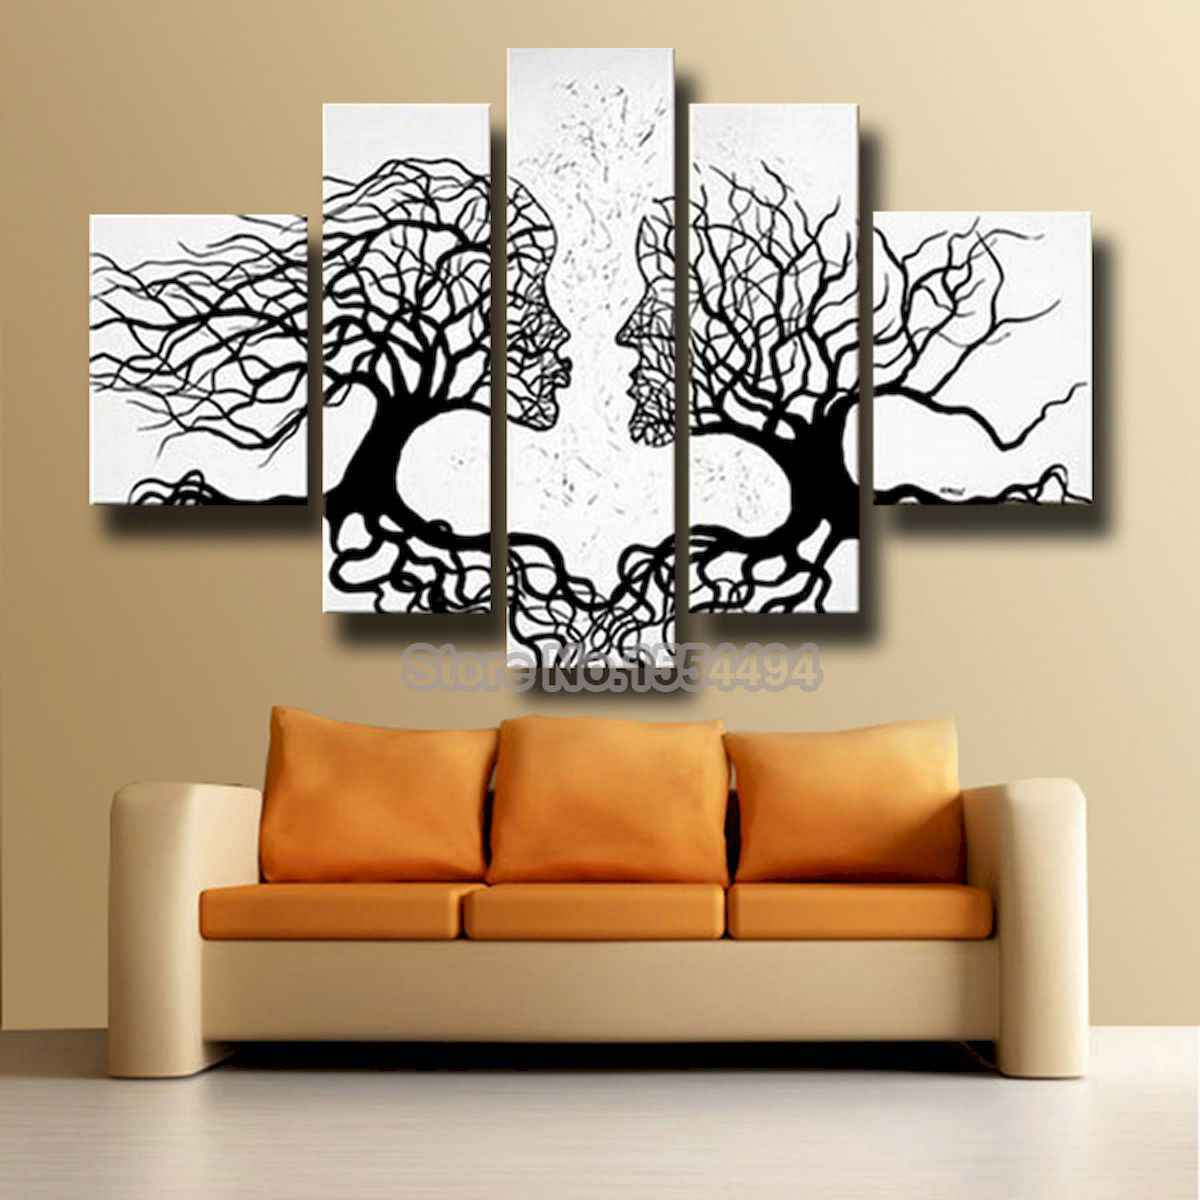 40 Awesome Wall Painting Ideas For Home (12)